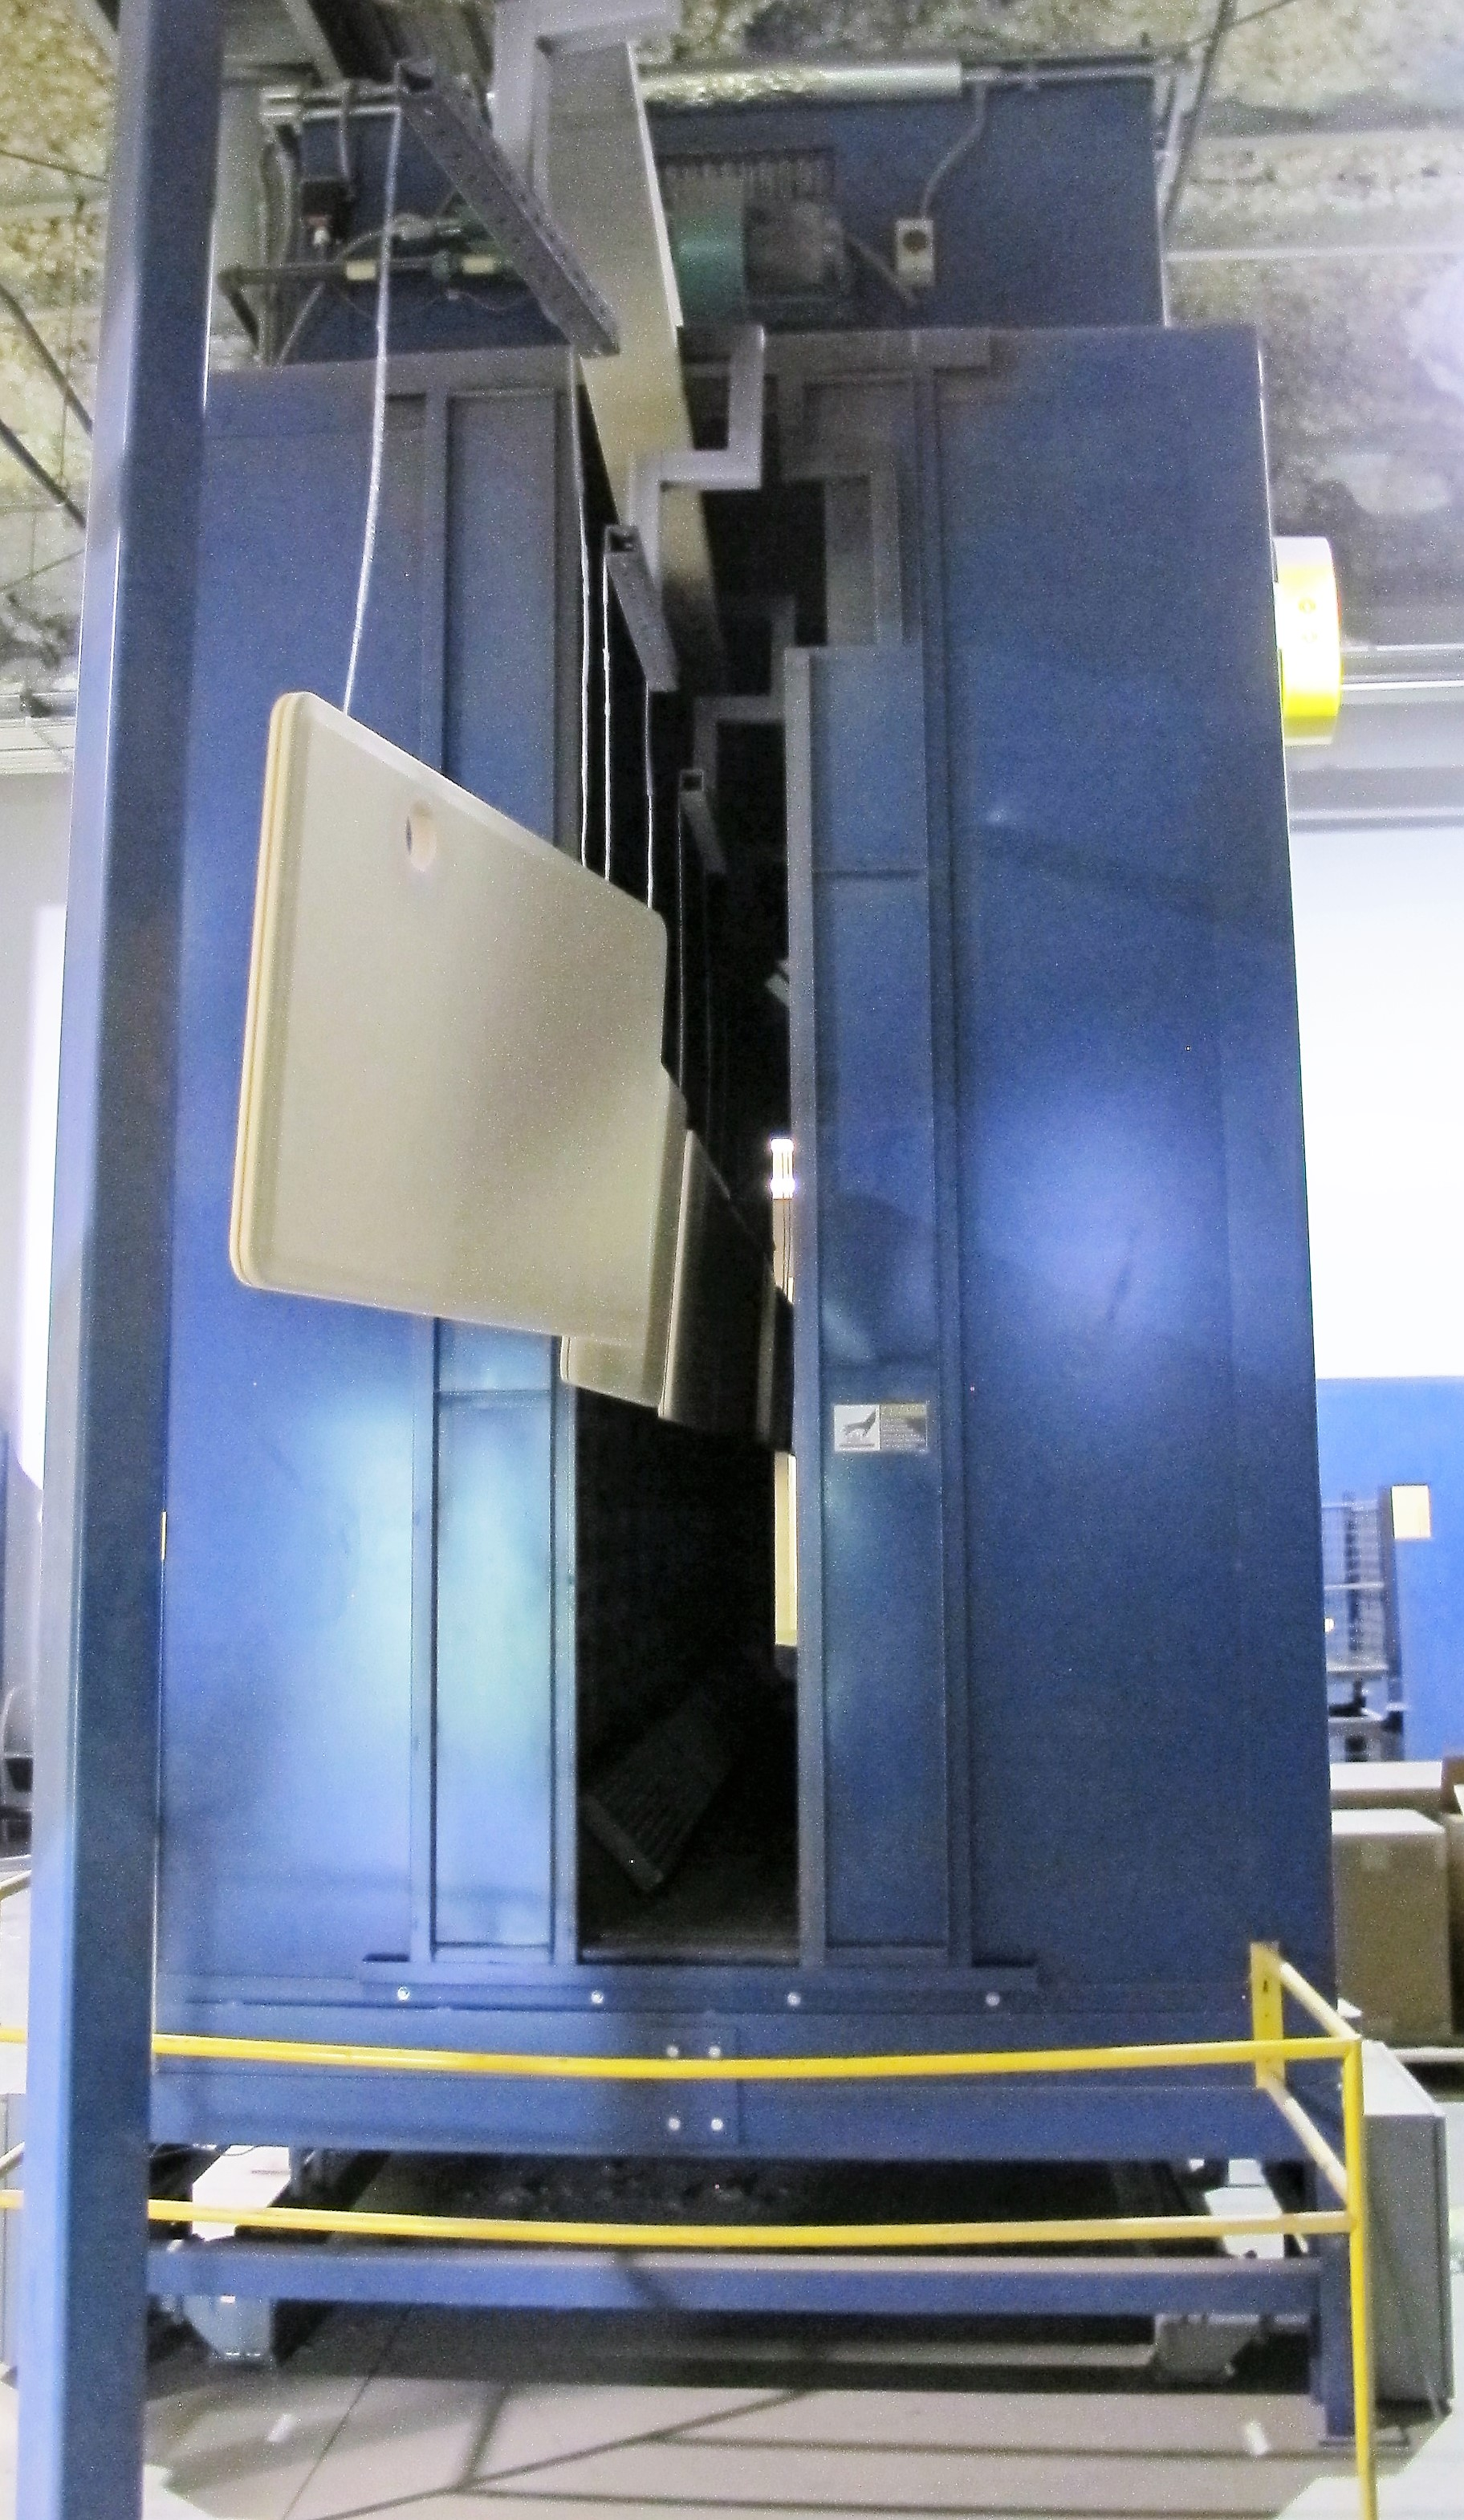 Lot 1 - EN-BLOC POWDER COATING PAINT LINE & OVEN SYSTEM CONSISTING OF LOTS 2 THROUGH 7A (SUBJECT TO